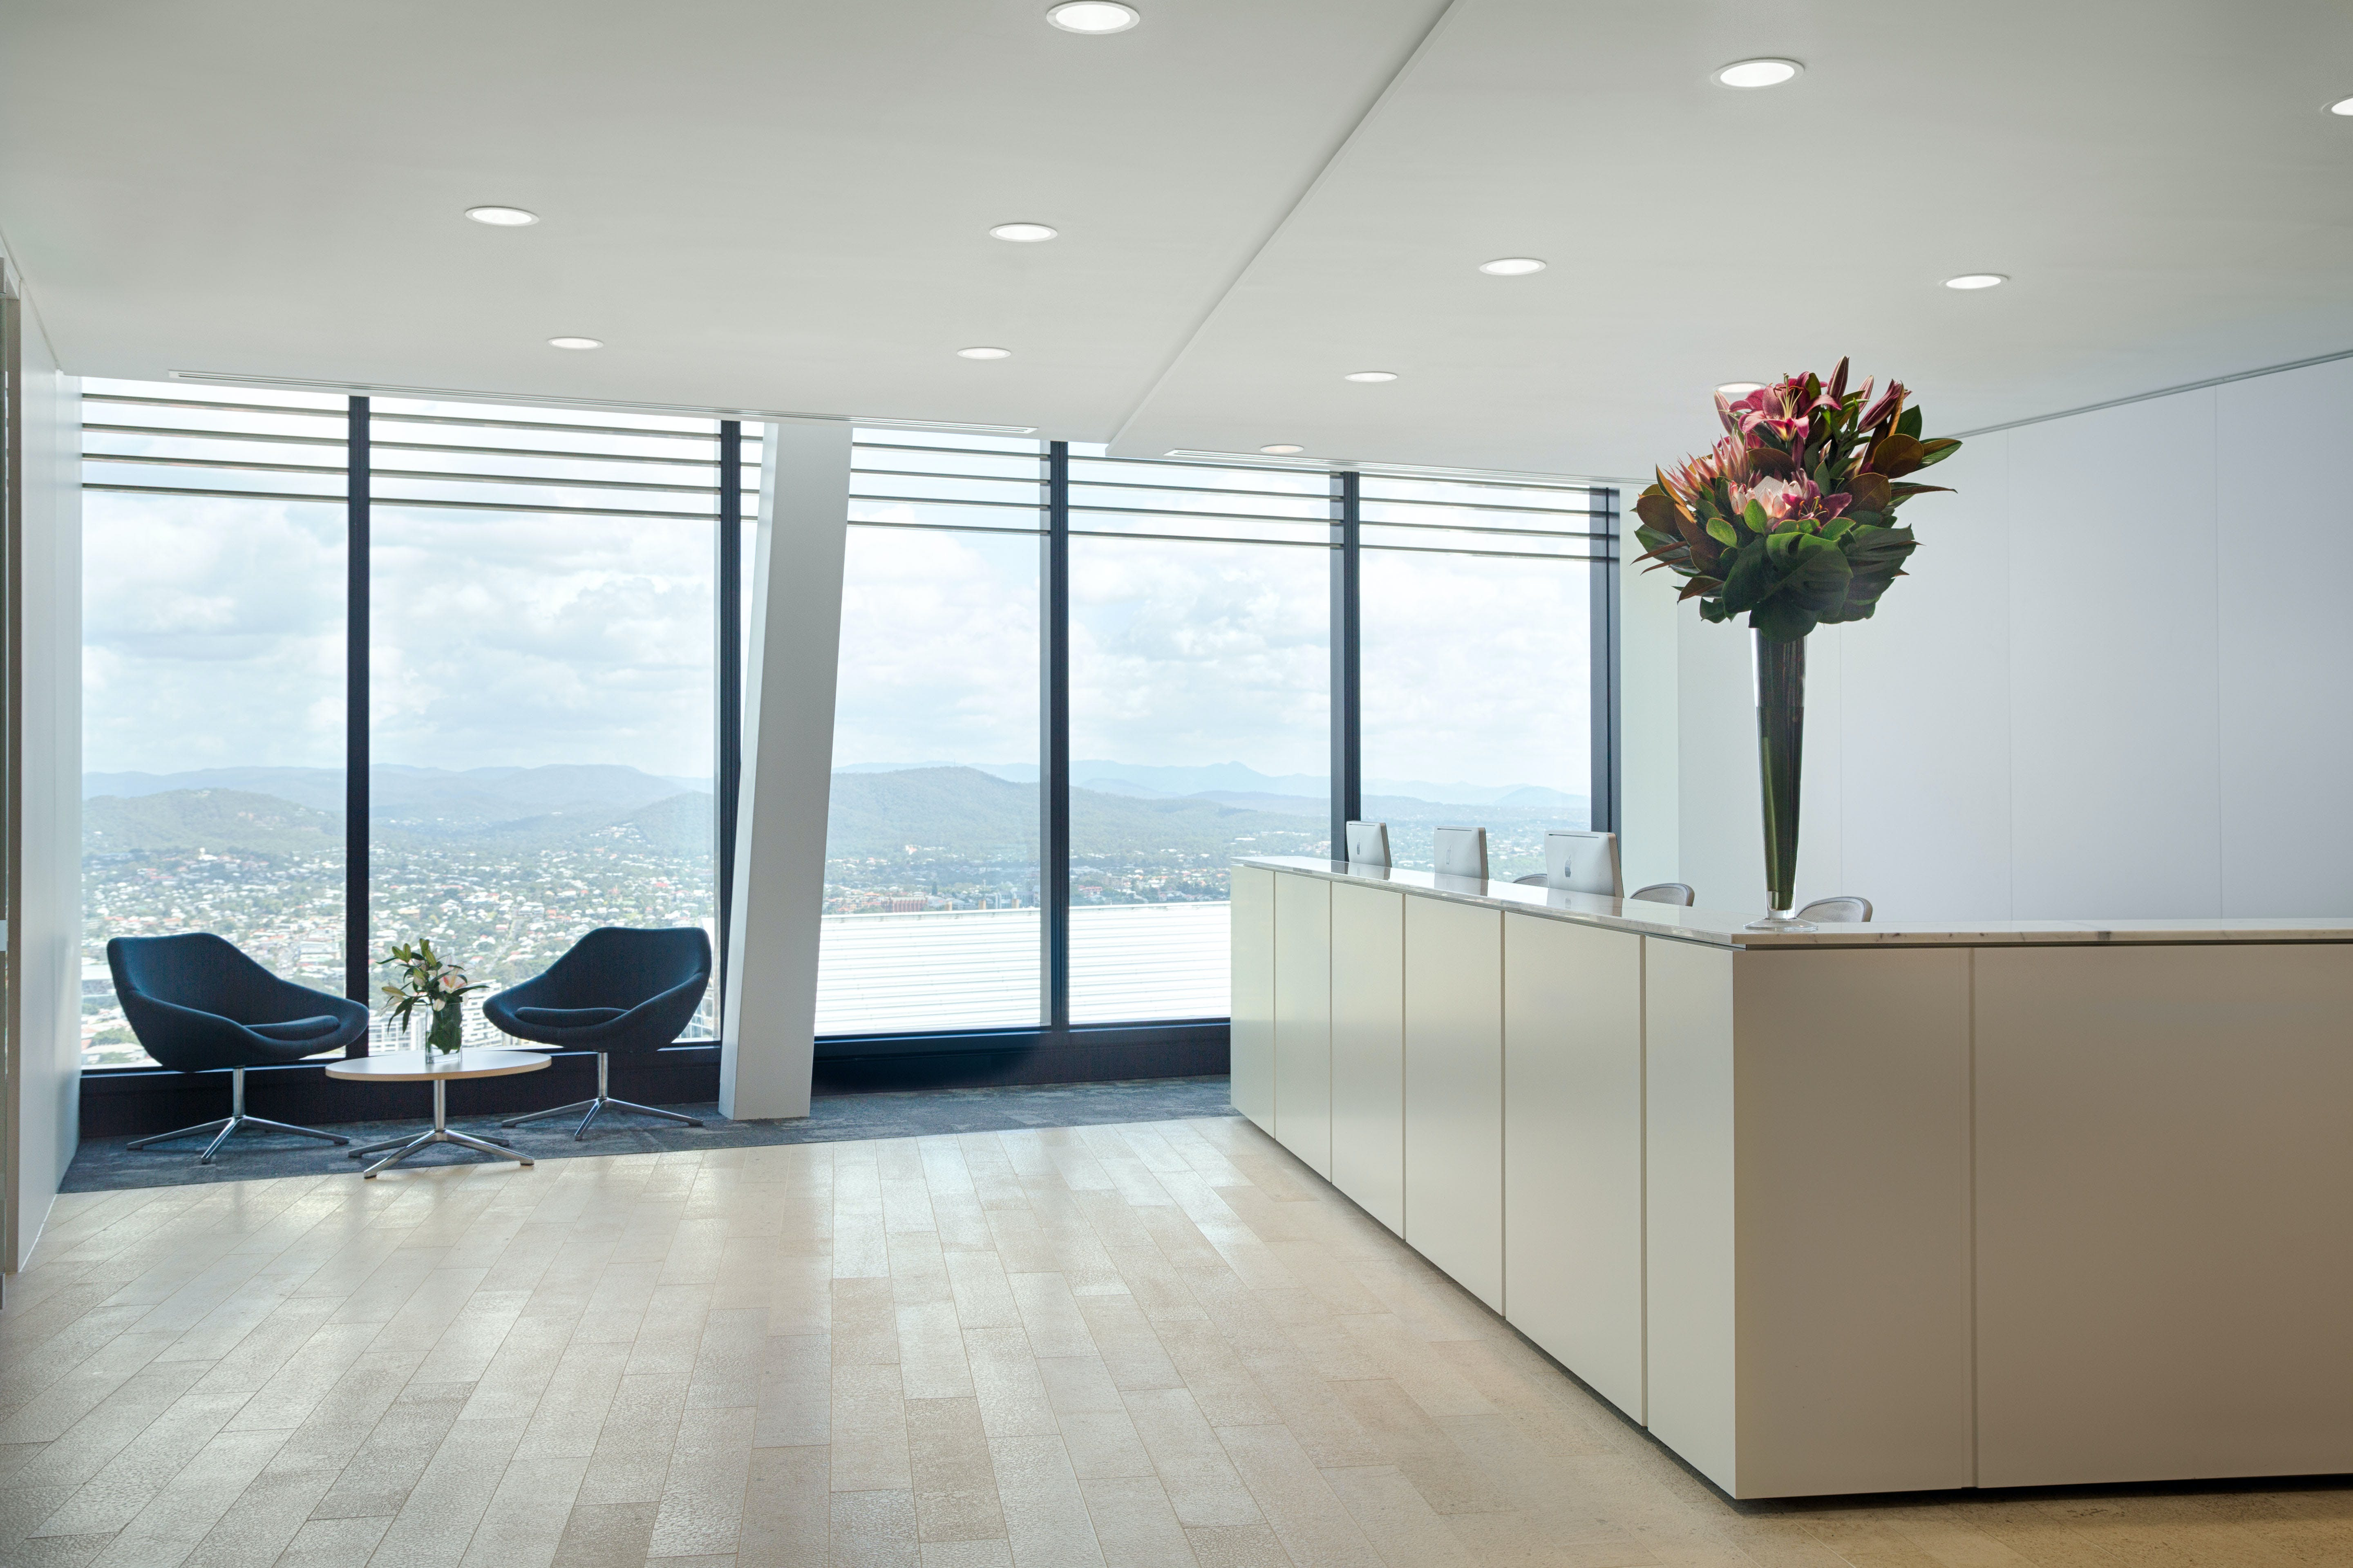 54B, meeting room at One One One Eagle Street, image 3